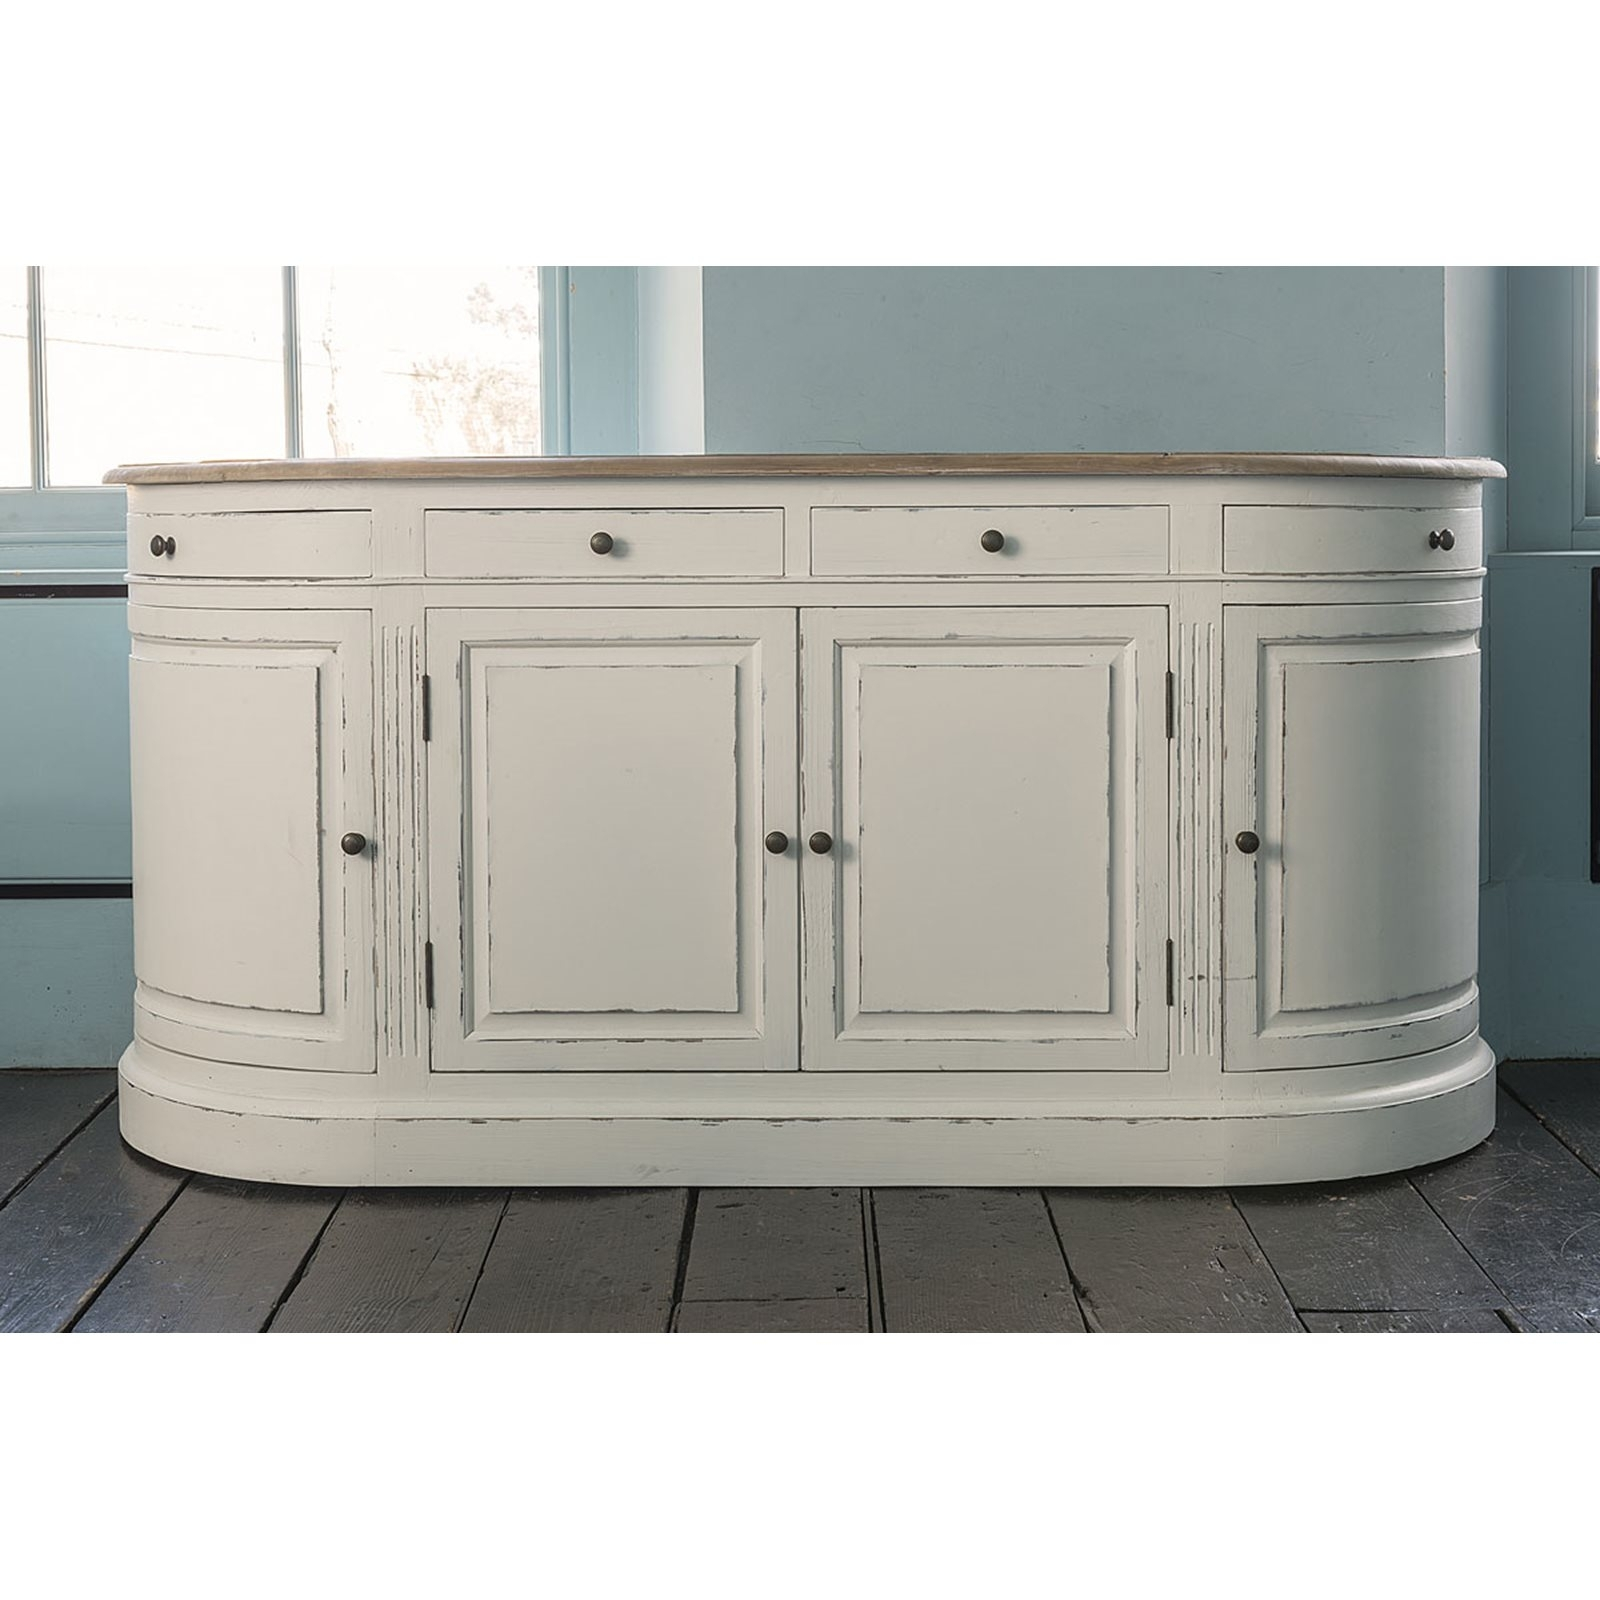 Vintage White Empire Curved Sideboard intended for Vintage 8 Glass Sideboards (Image 30 of 30)